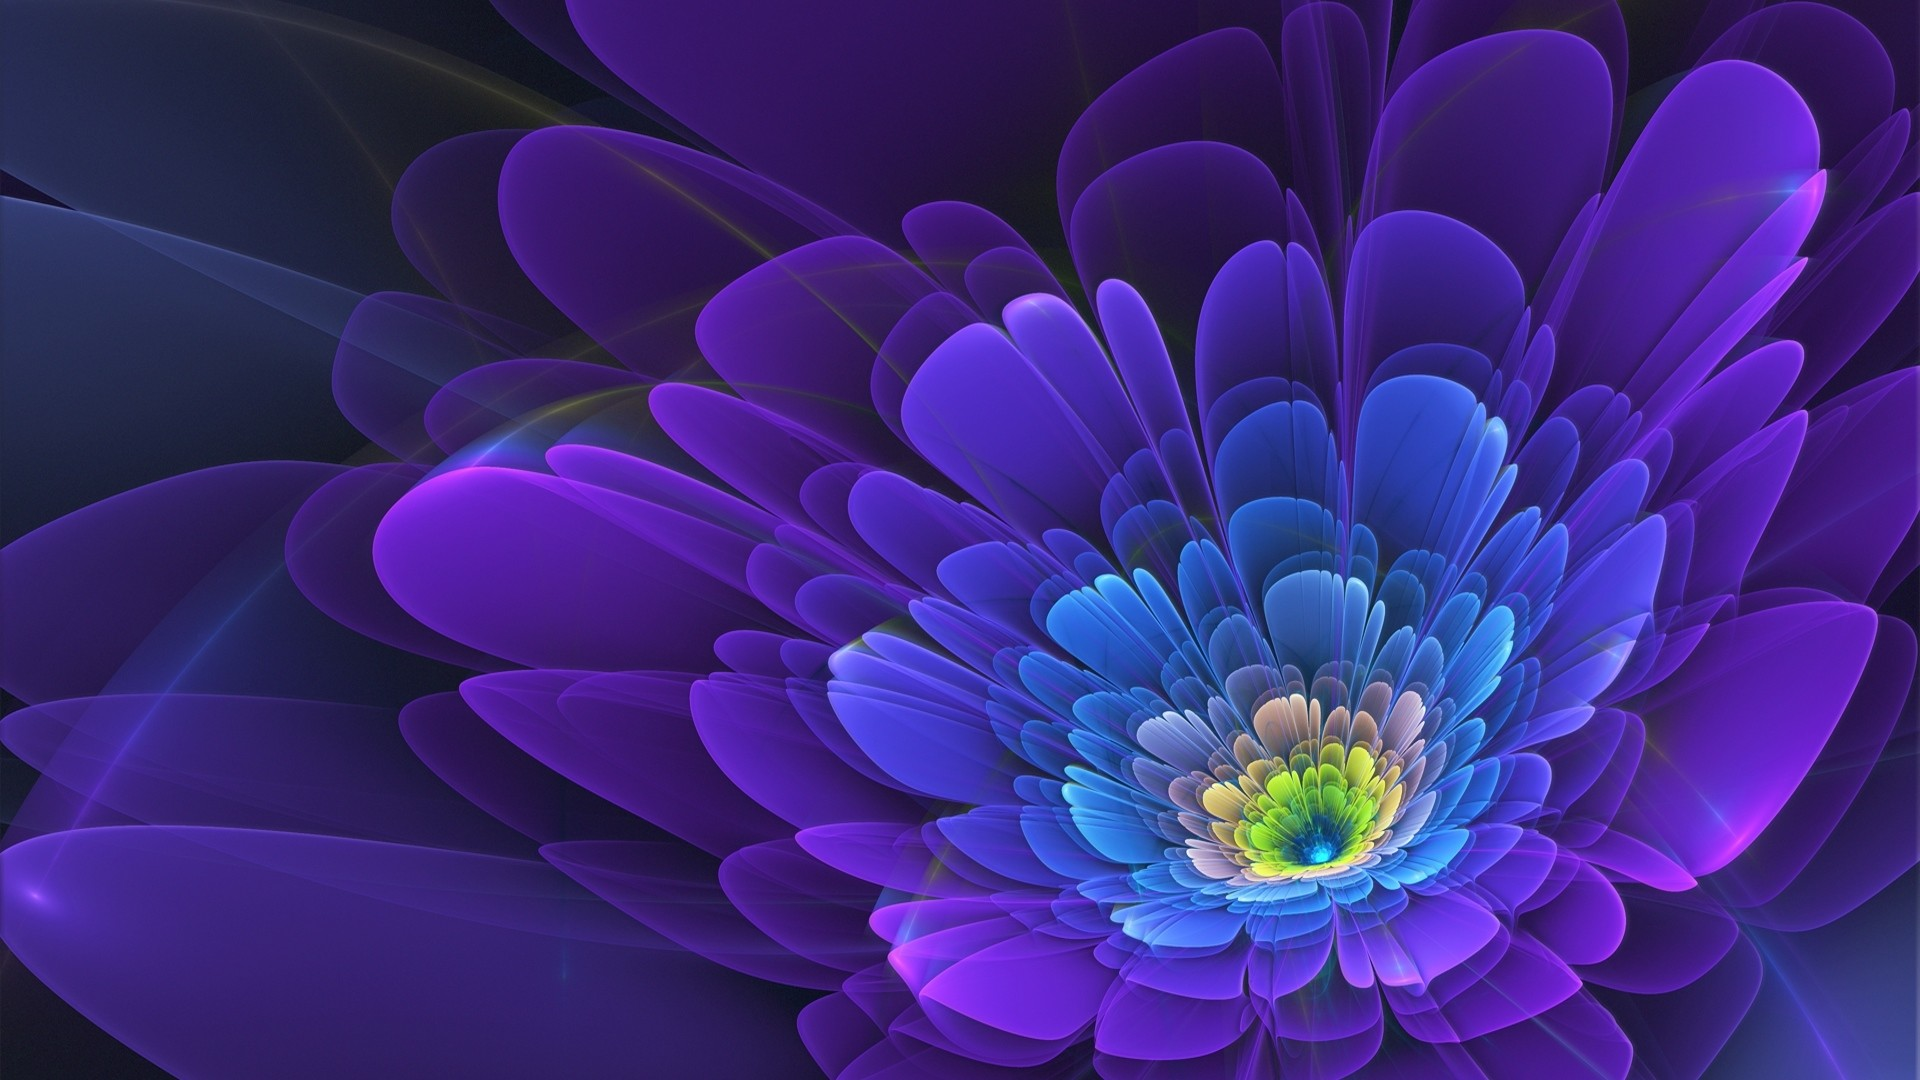 Wallpaper purple, flower, fractal